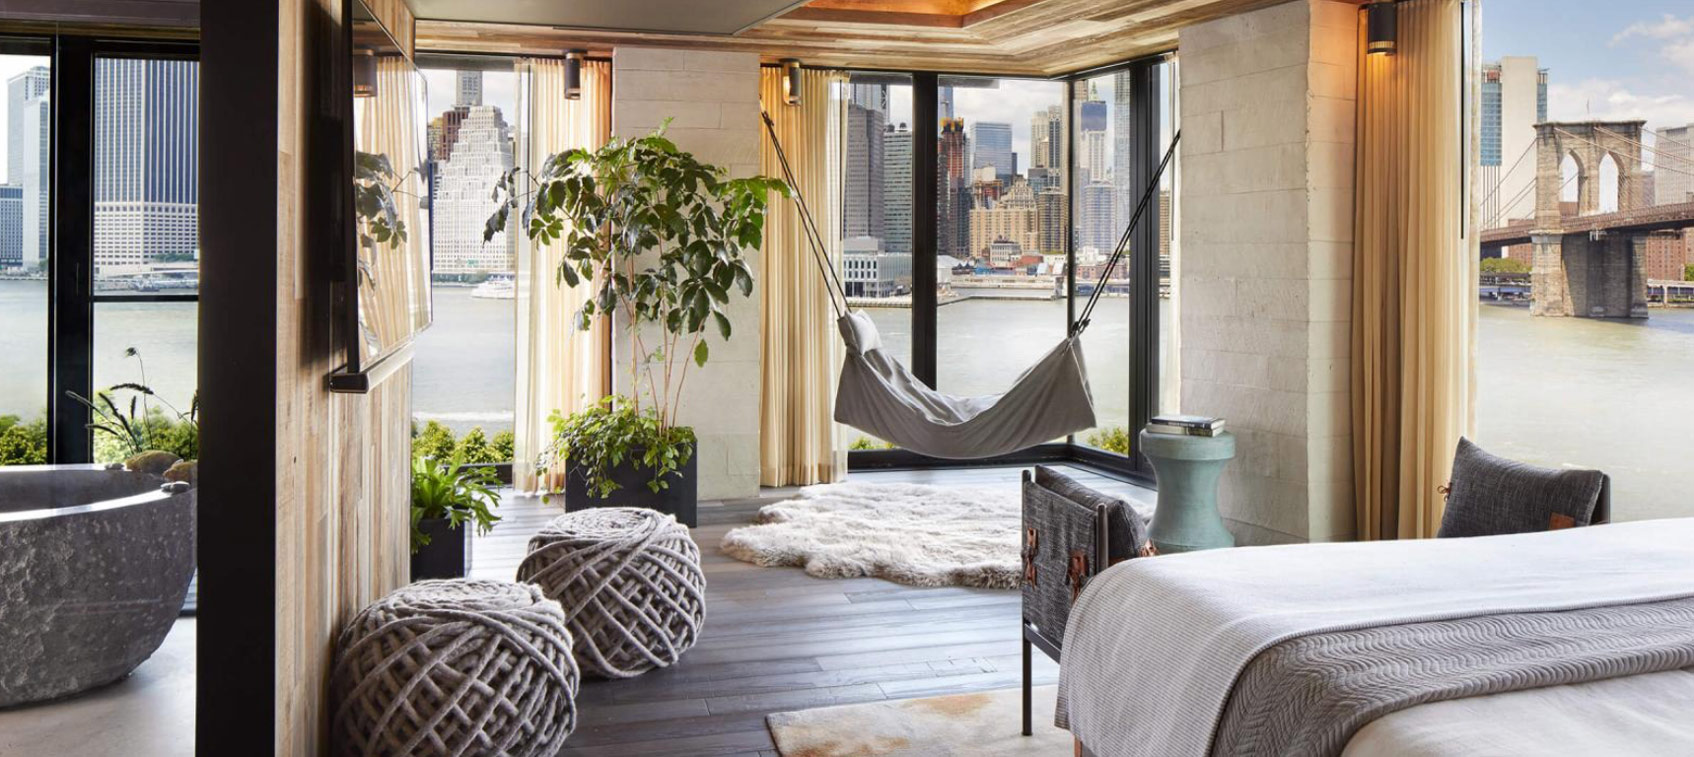 Отель 1 Hotel Brooklyn Bridge Нью-Йорк